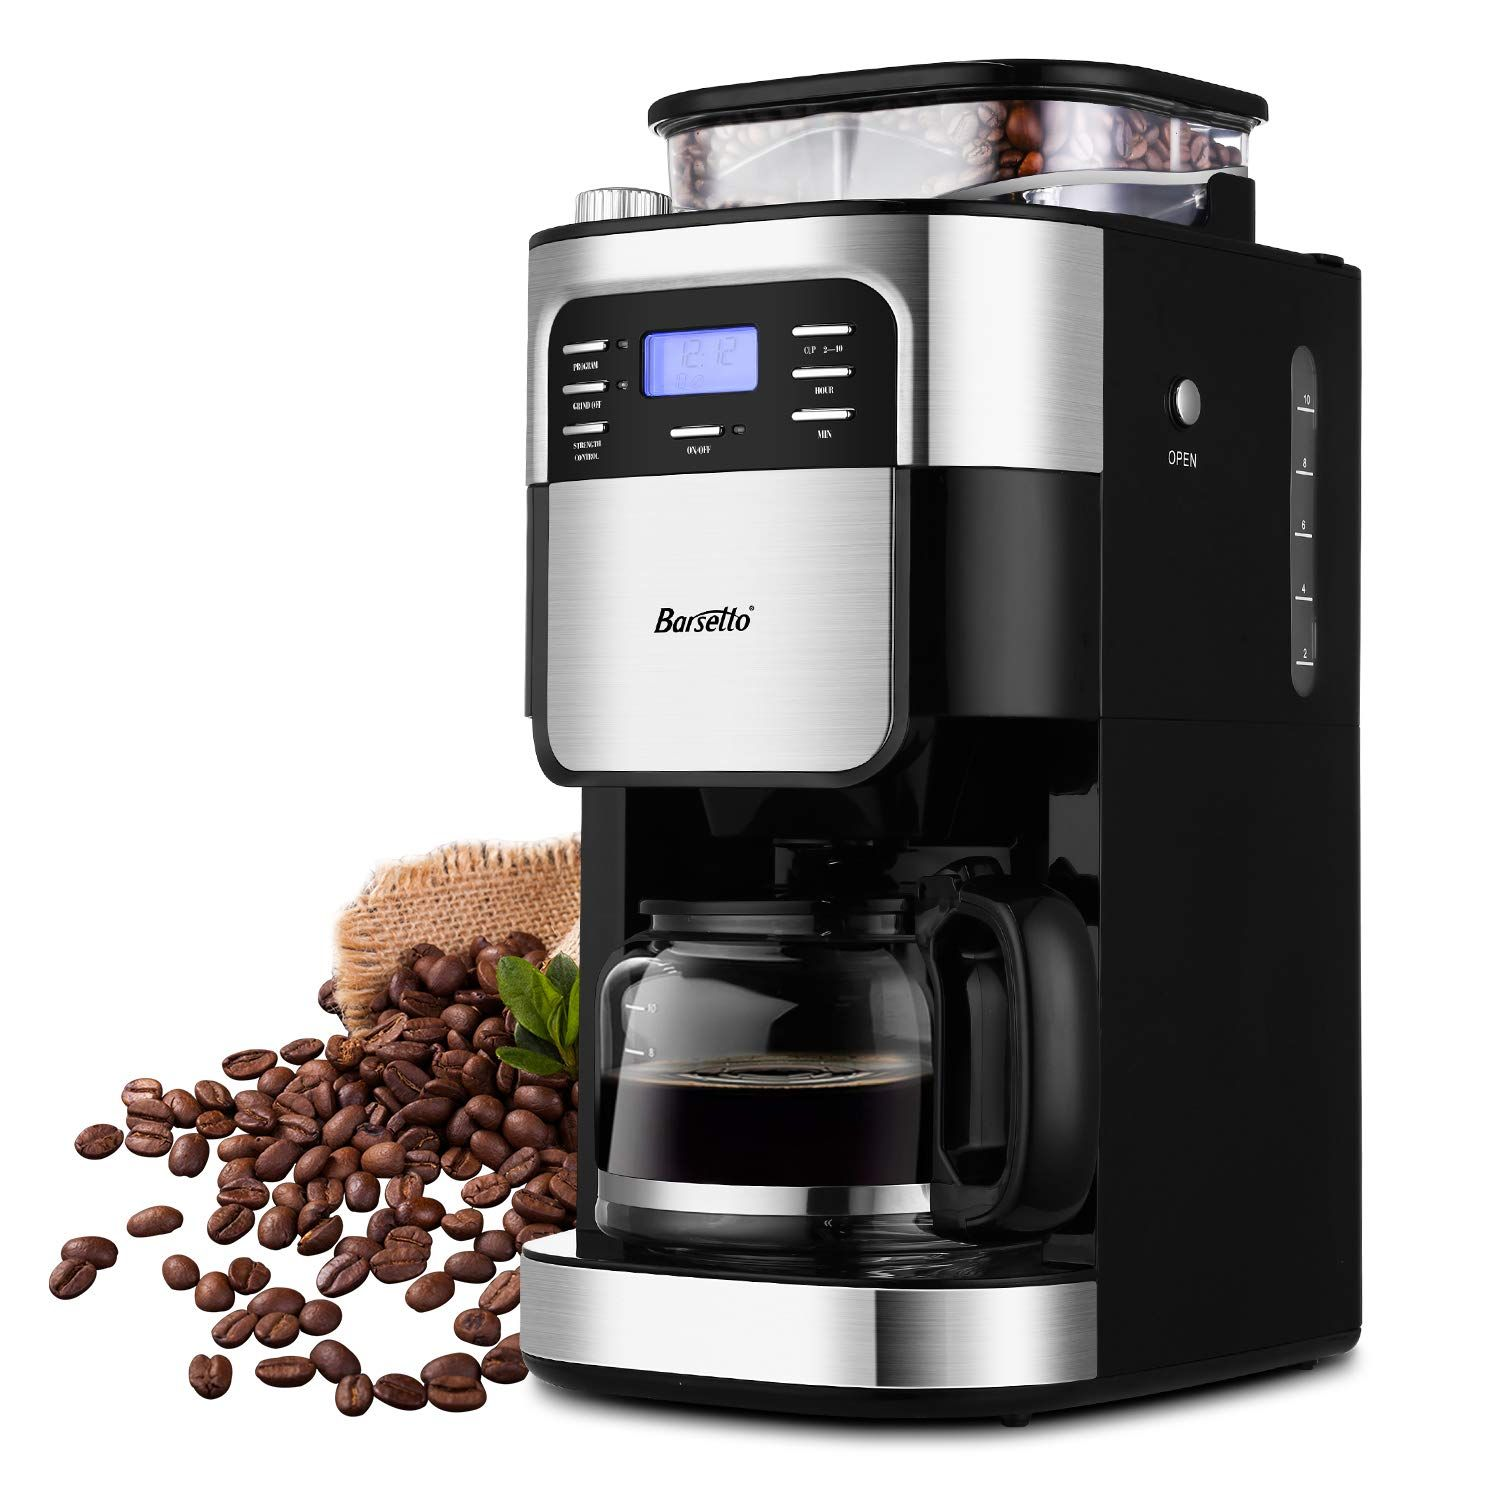 10Cup Programmable Coffee Maker with Timer mode and Auto